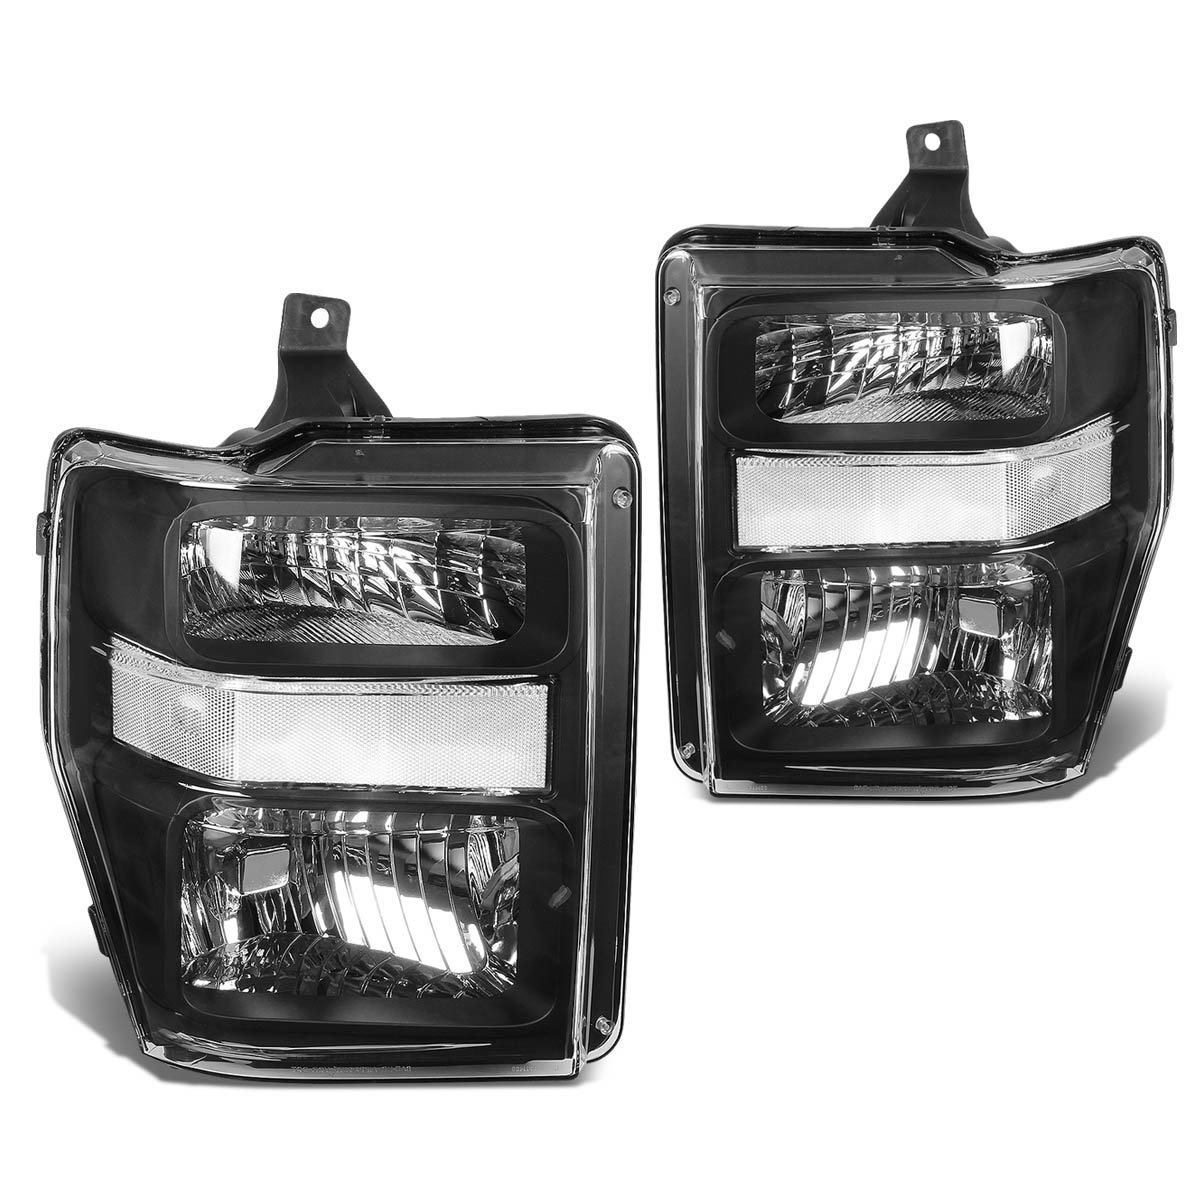 08 10 ford sueprduty f250 f350 f450 f550 replacement crystal headlights black clear